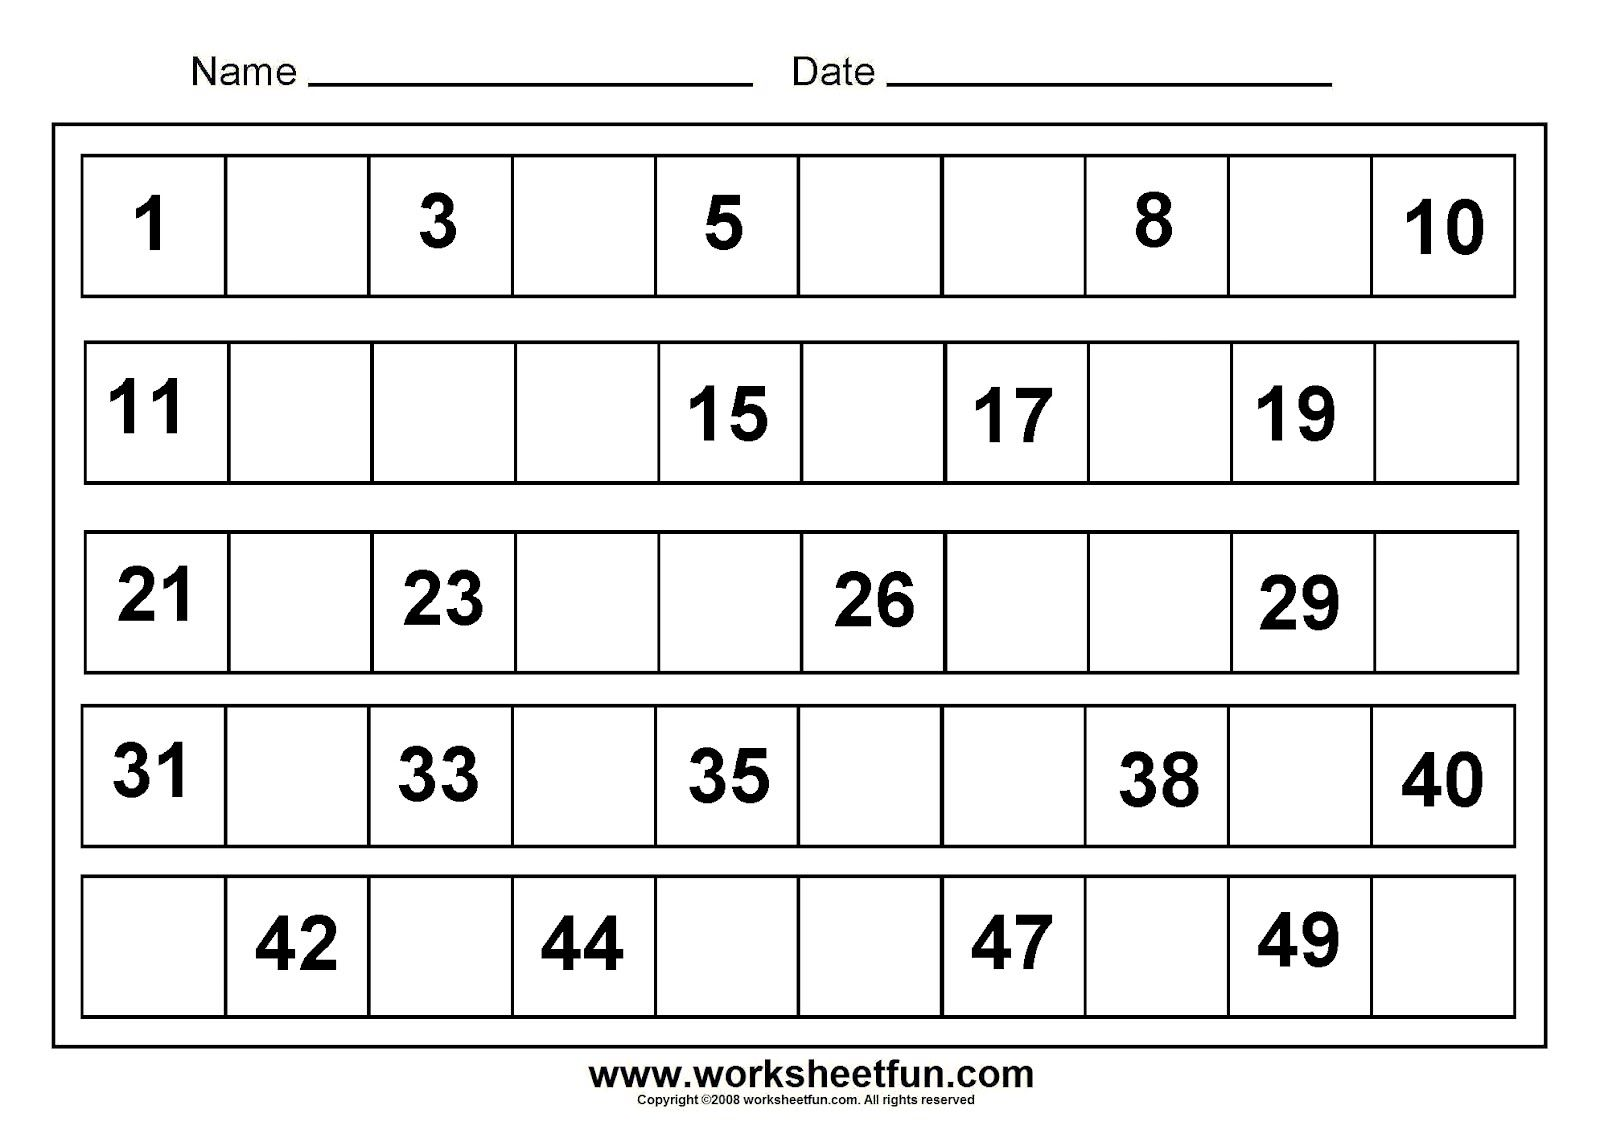 math worksheet : 1000 images about work sheets on pinterest  math worksheets  : Kindergarten Worksheet Math